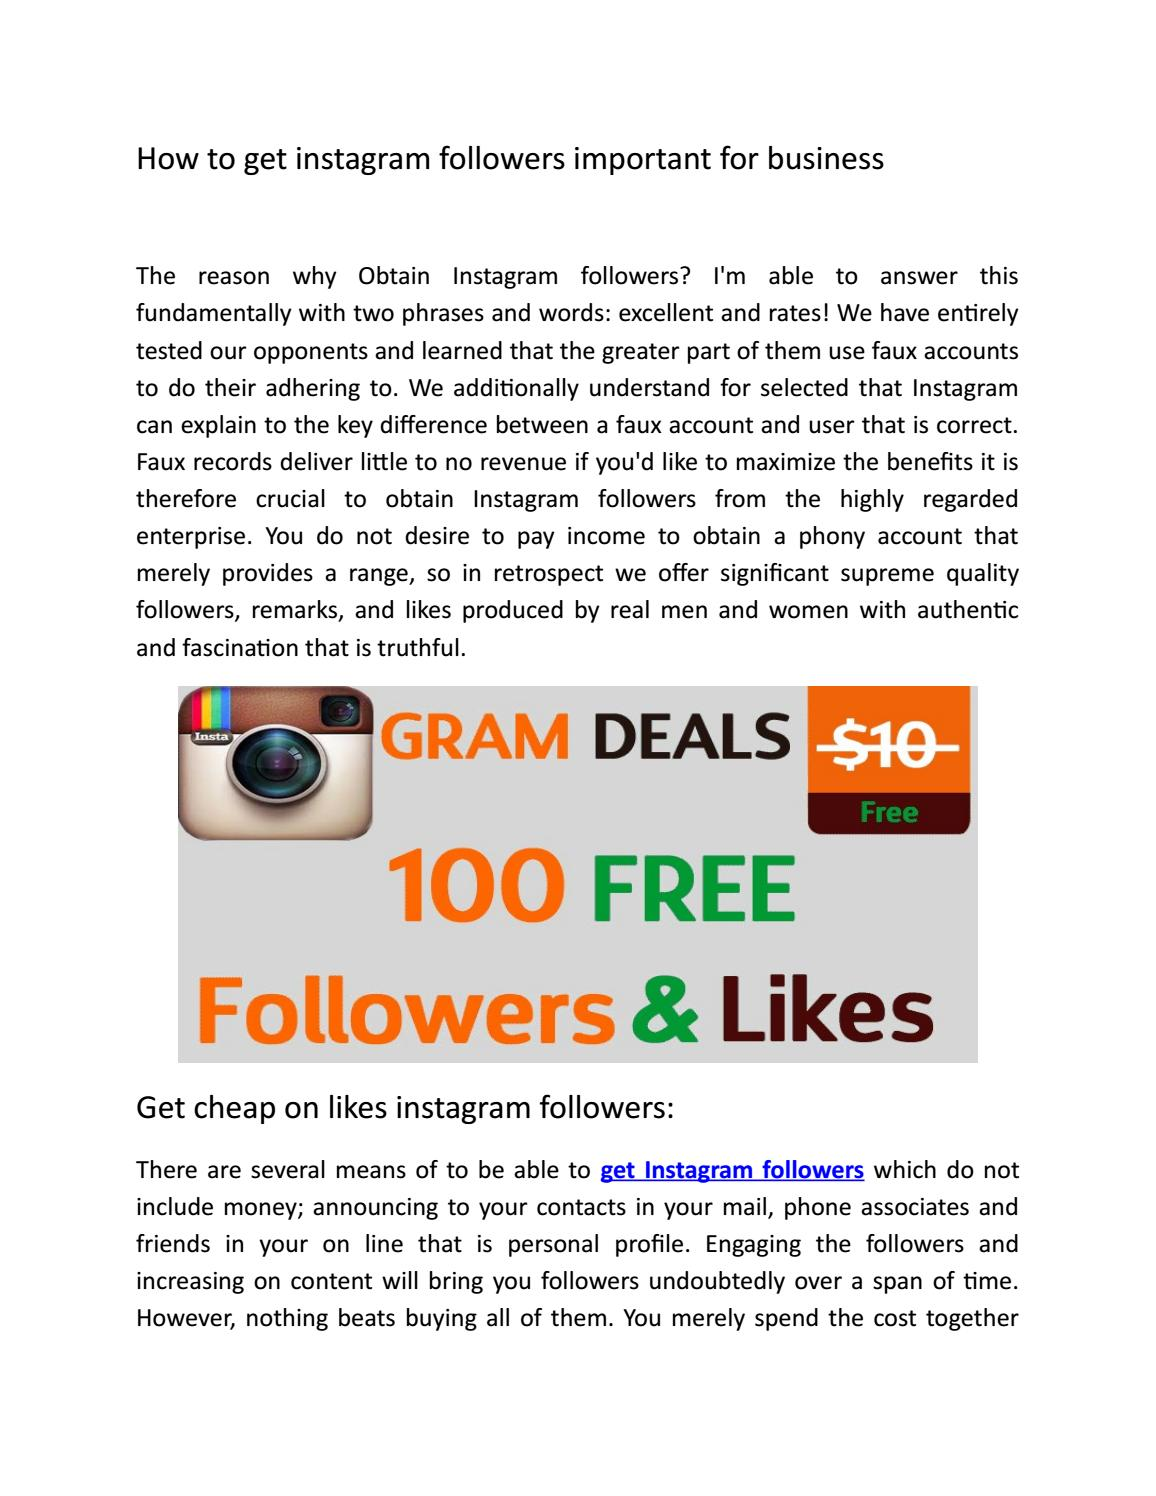 how get followers on instagram and marketing for business by